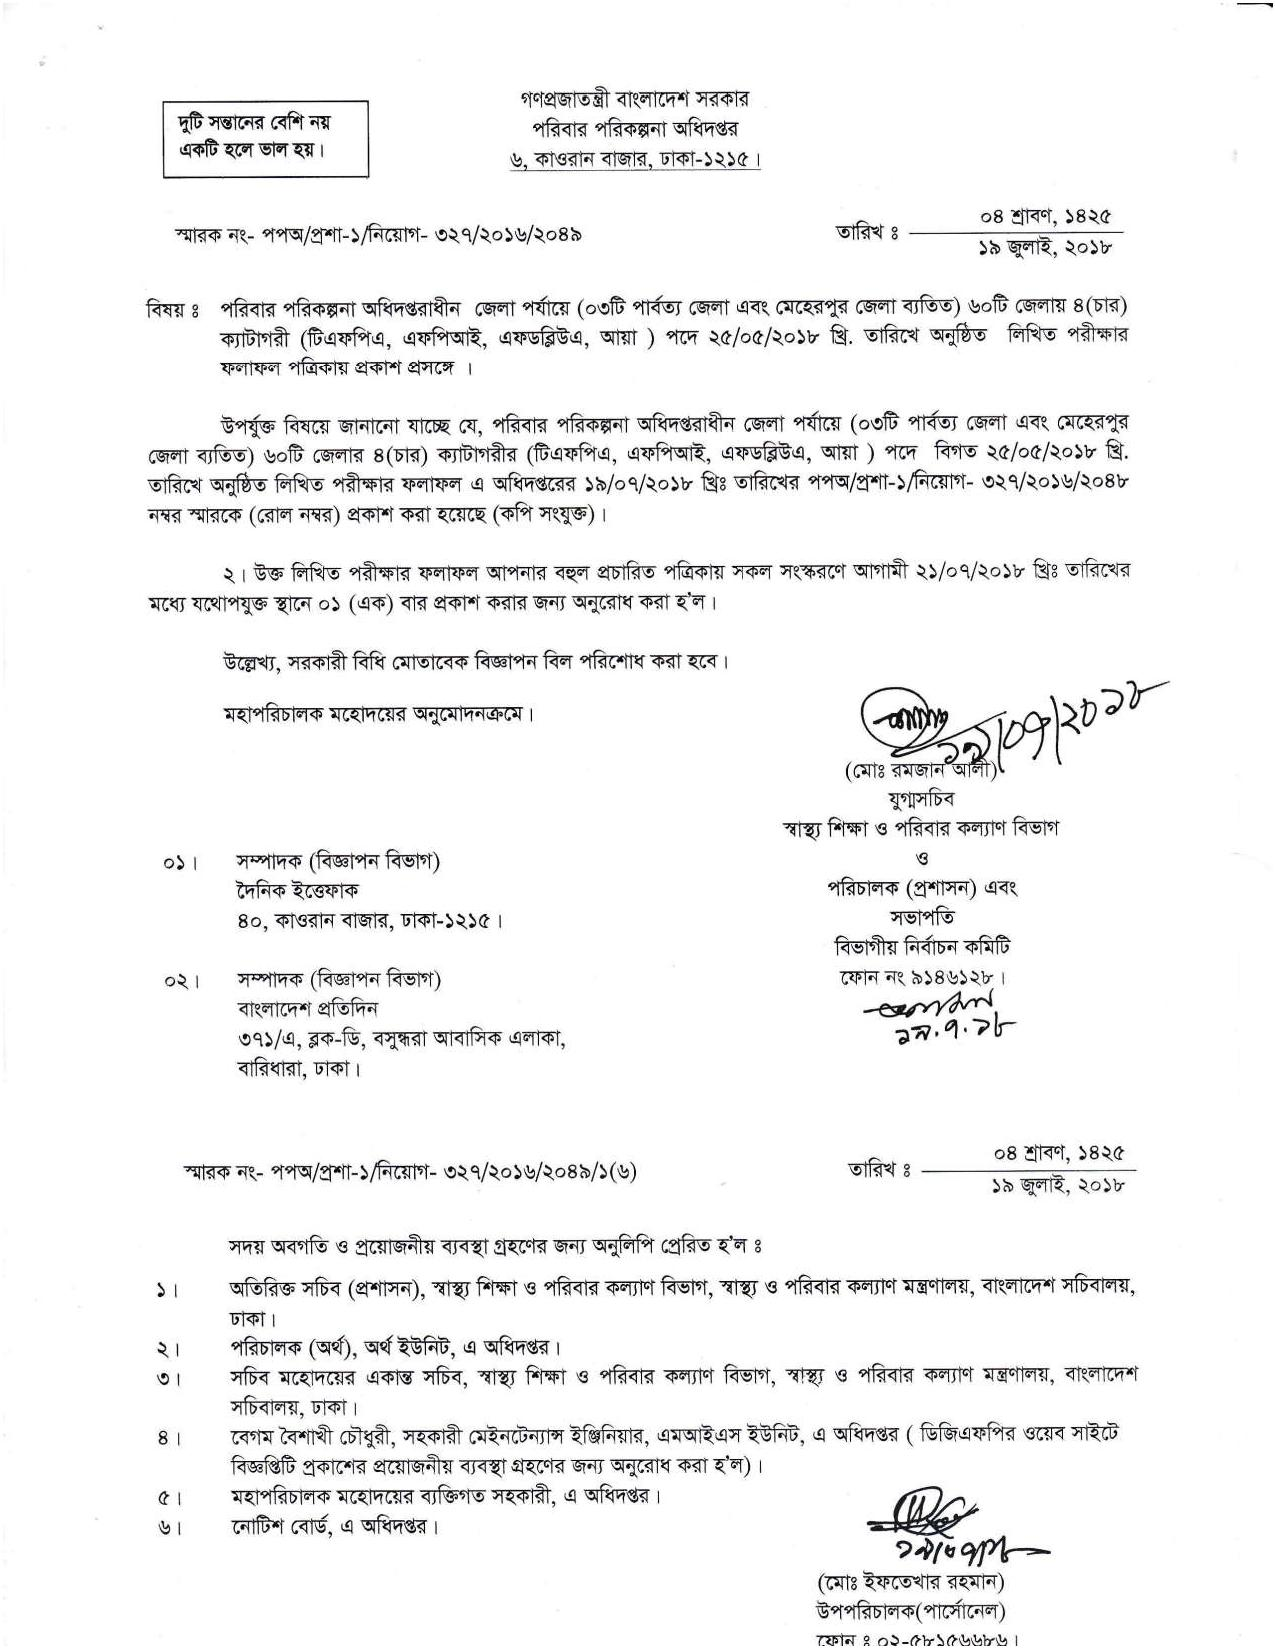 Directorate General of Family Planning (DGFP) Exam Result